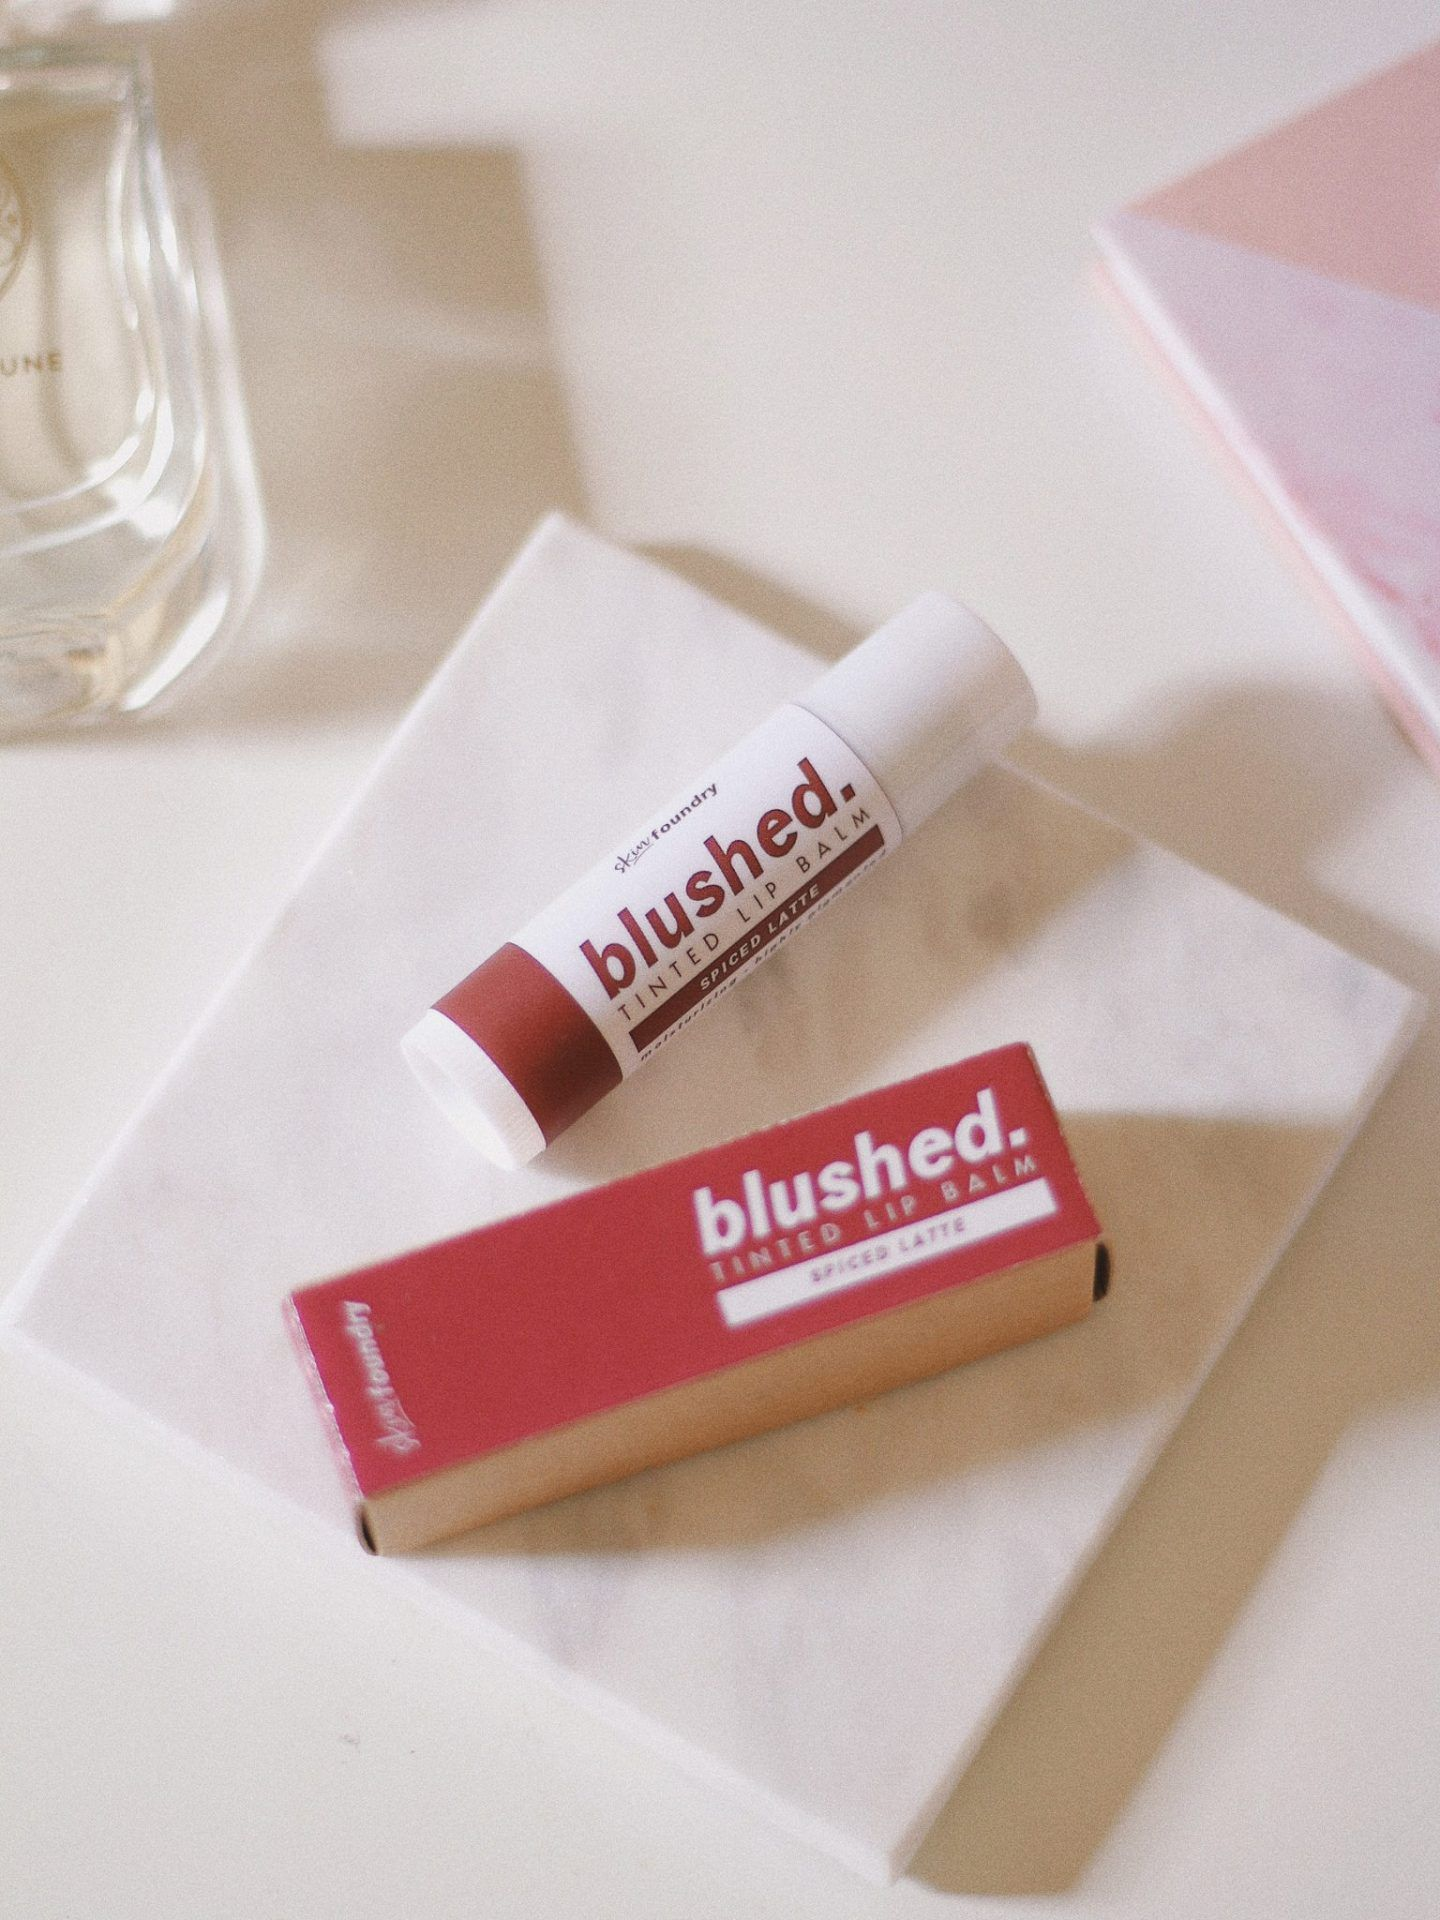 Skin Foundry Blushed Tinted Lip Balm Review Spiced Latte